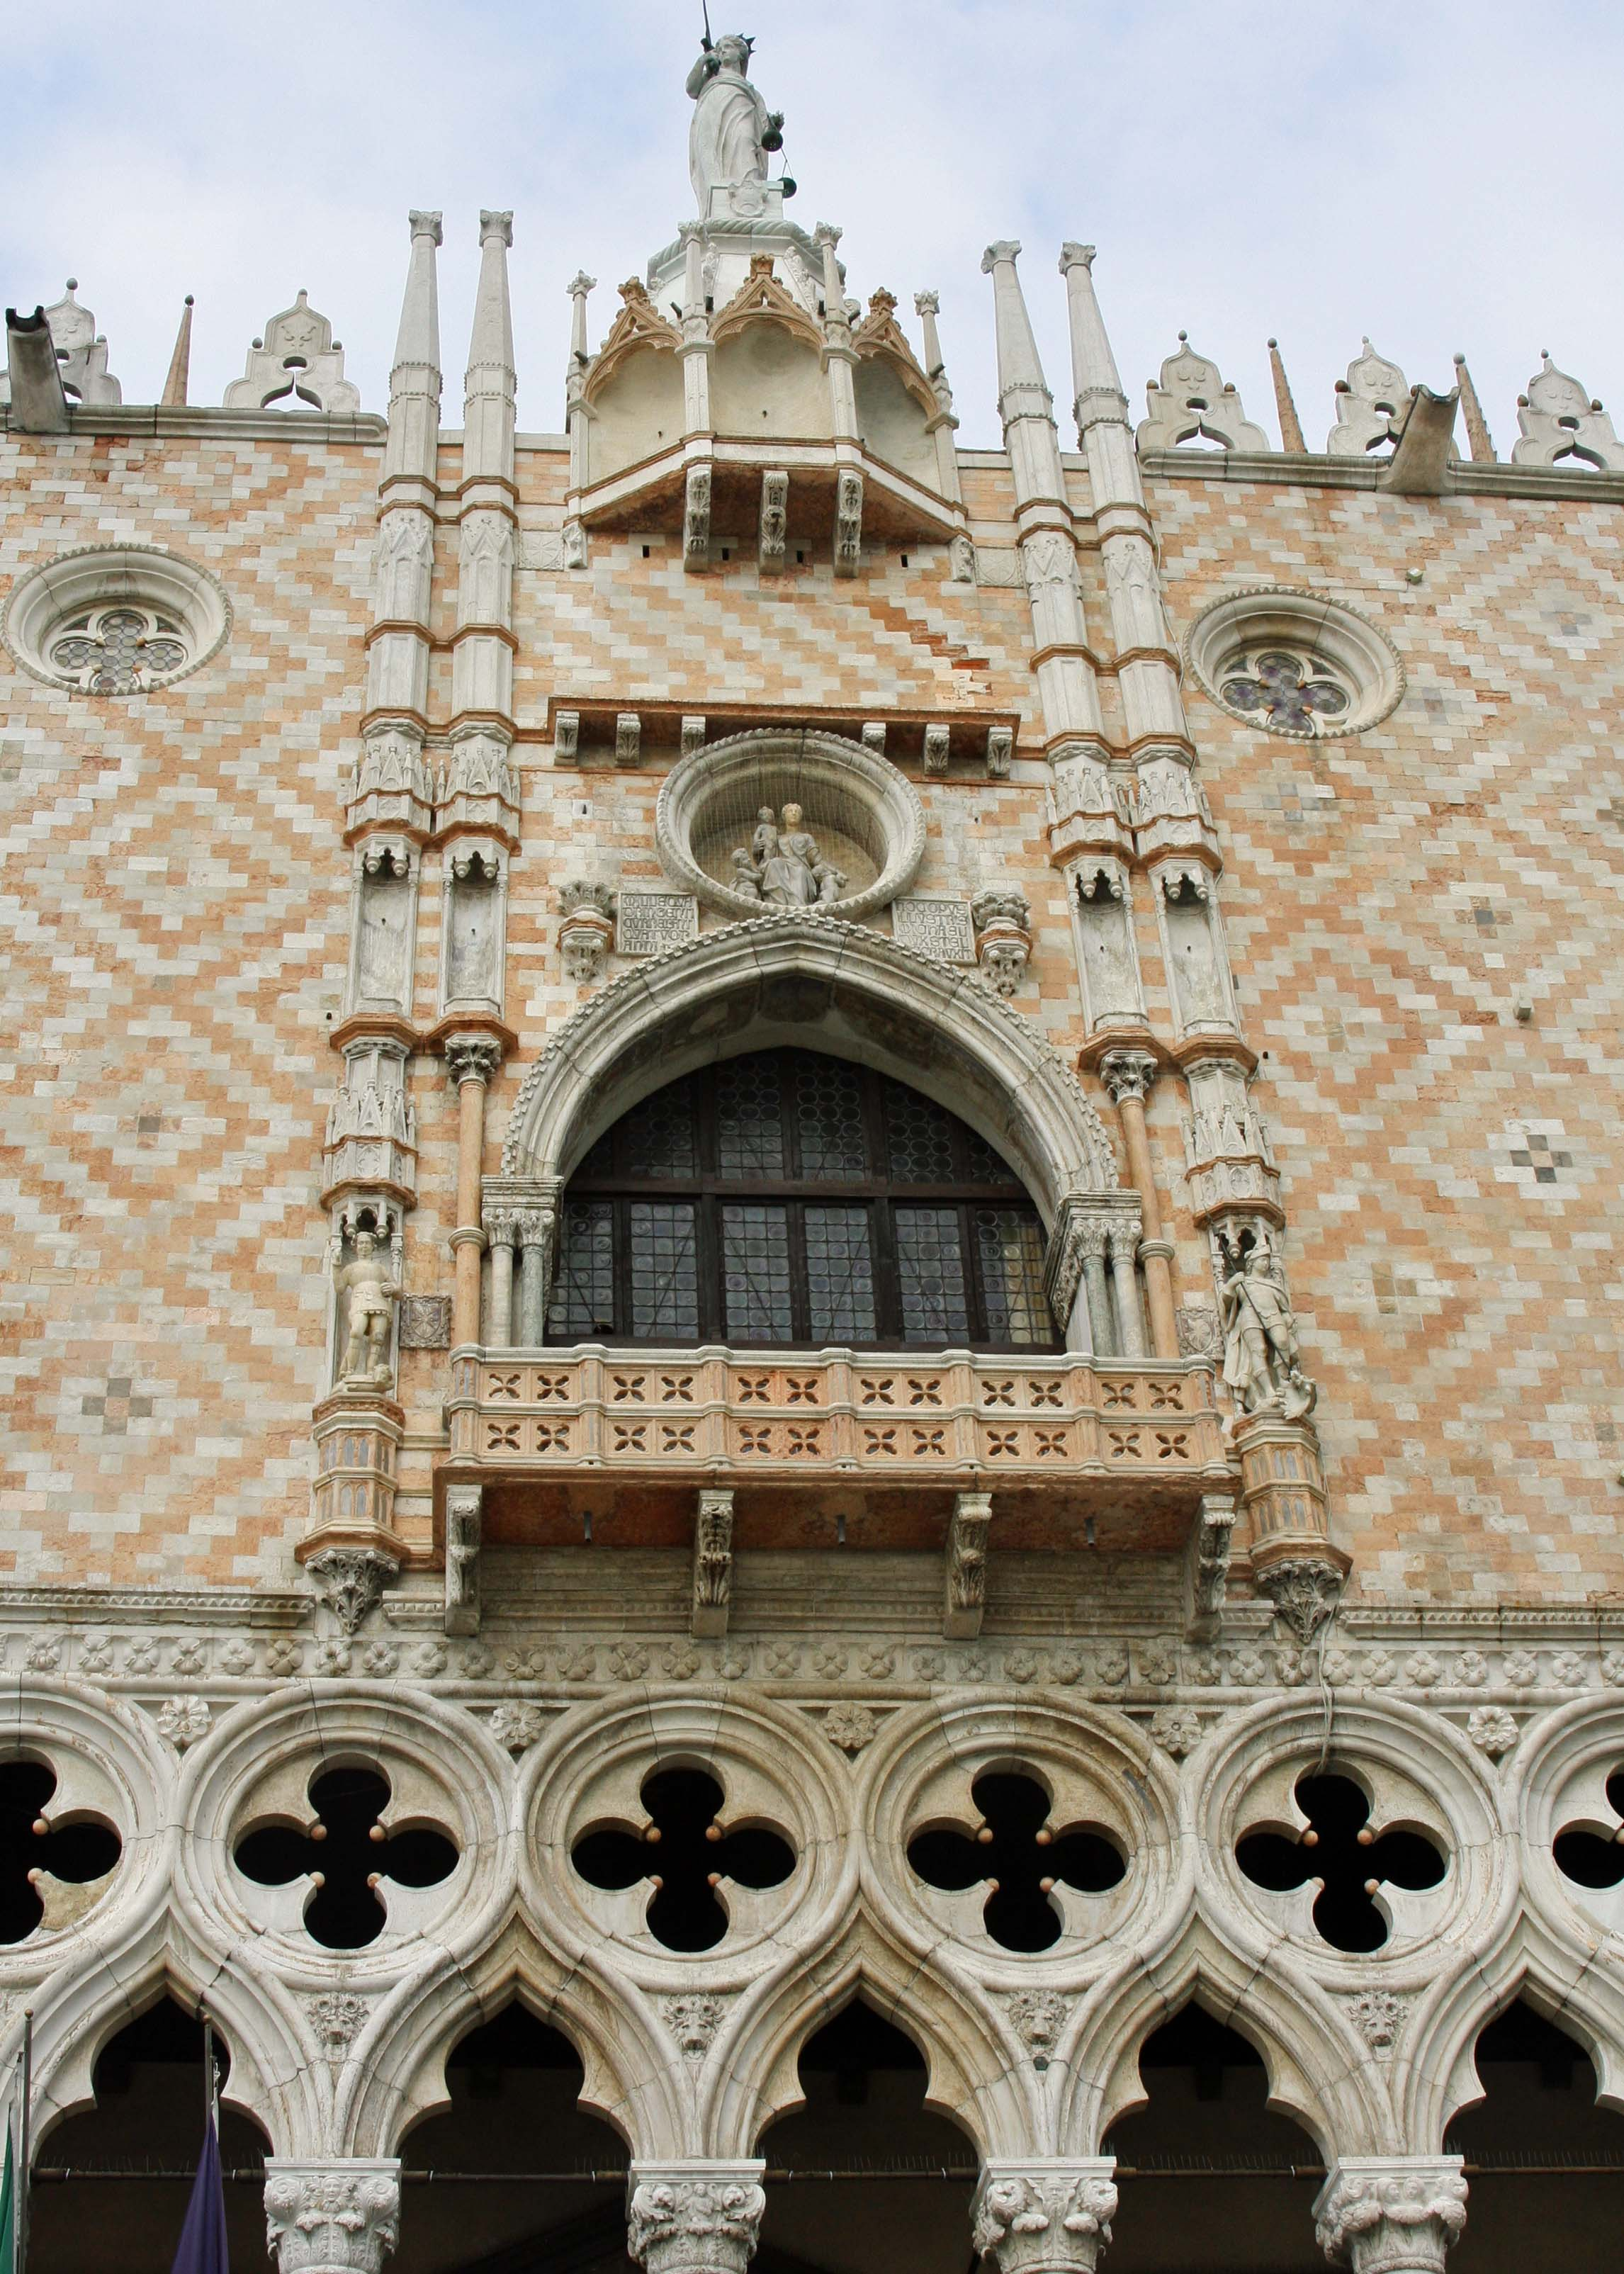 The Doge's Place once served as the center of government for Venice and was home of the Doge, the most powerful man in Venice at the time and therefore one of the most powerful men in the western world. Today the palace is a museum filled with magnificent art.